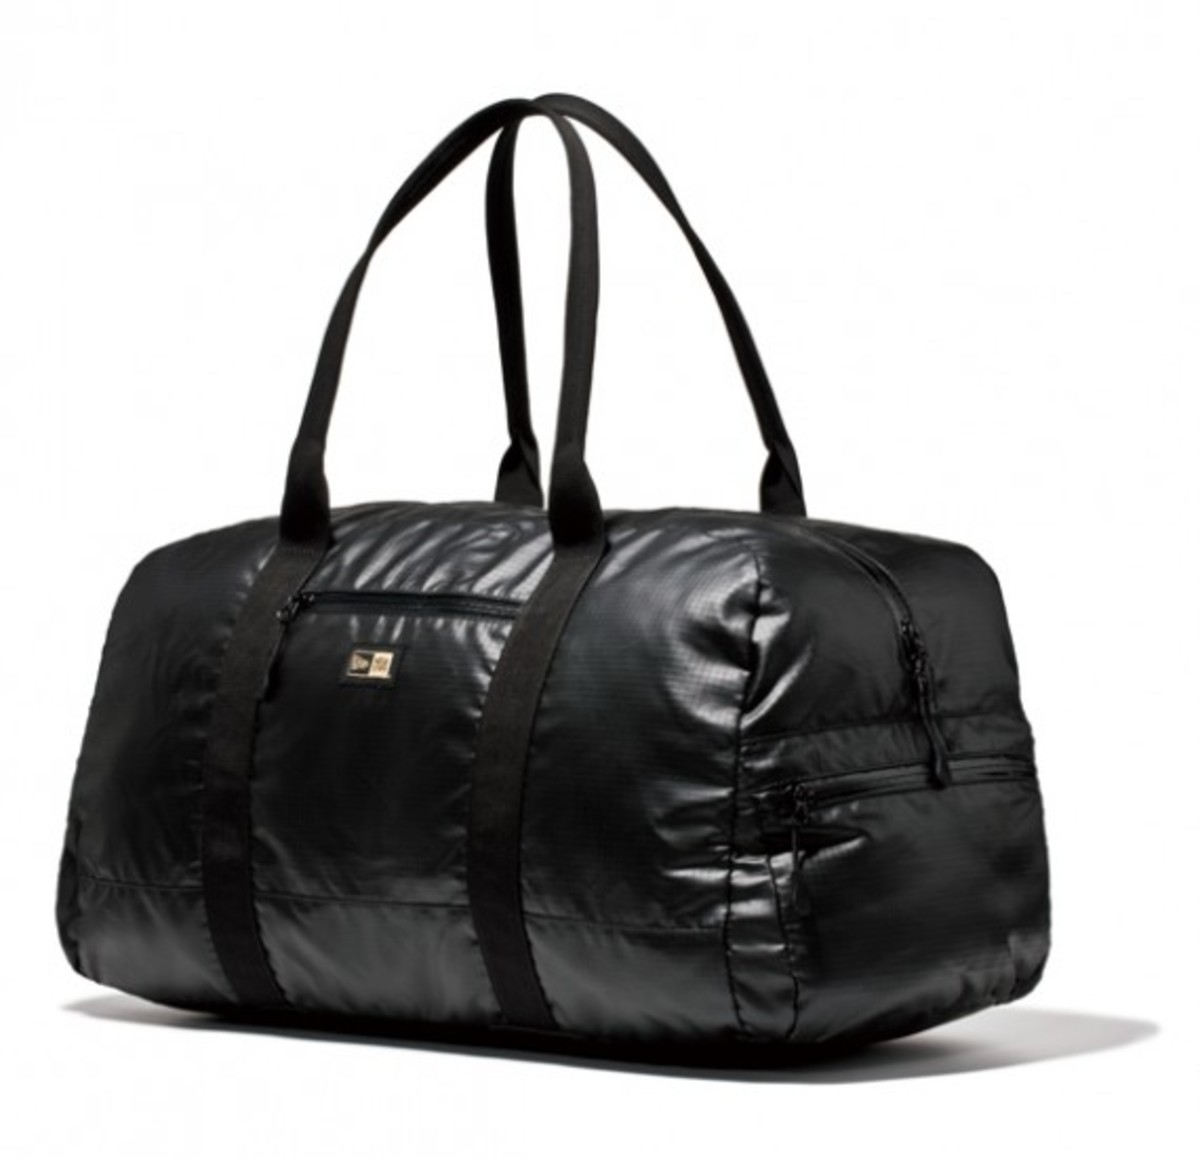 new-era-reversible-duffle-bag-01